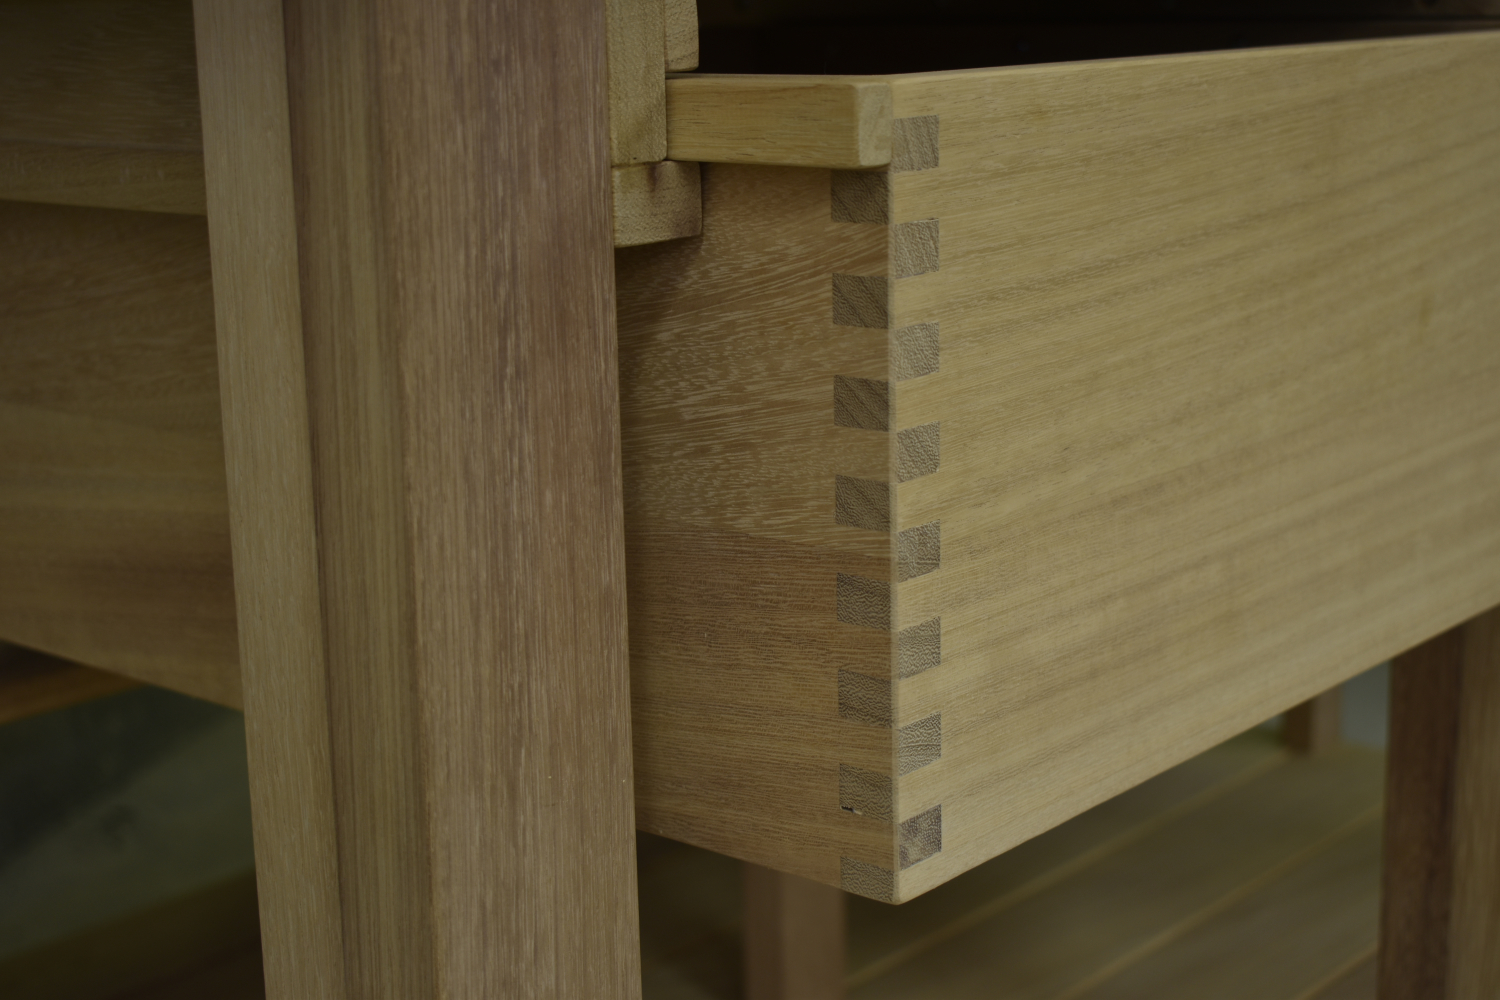 Finger jointed drawer boxes